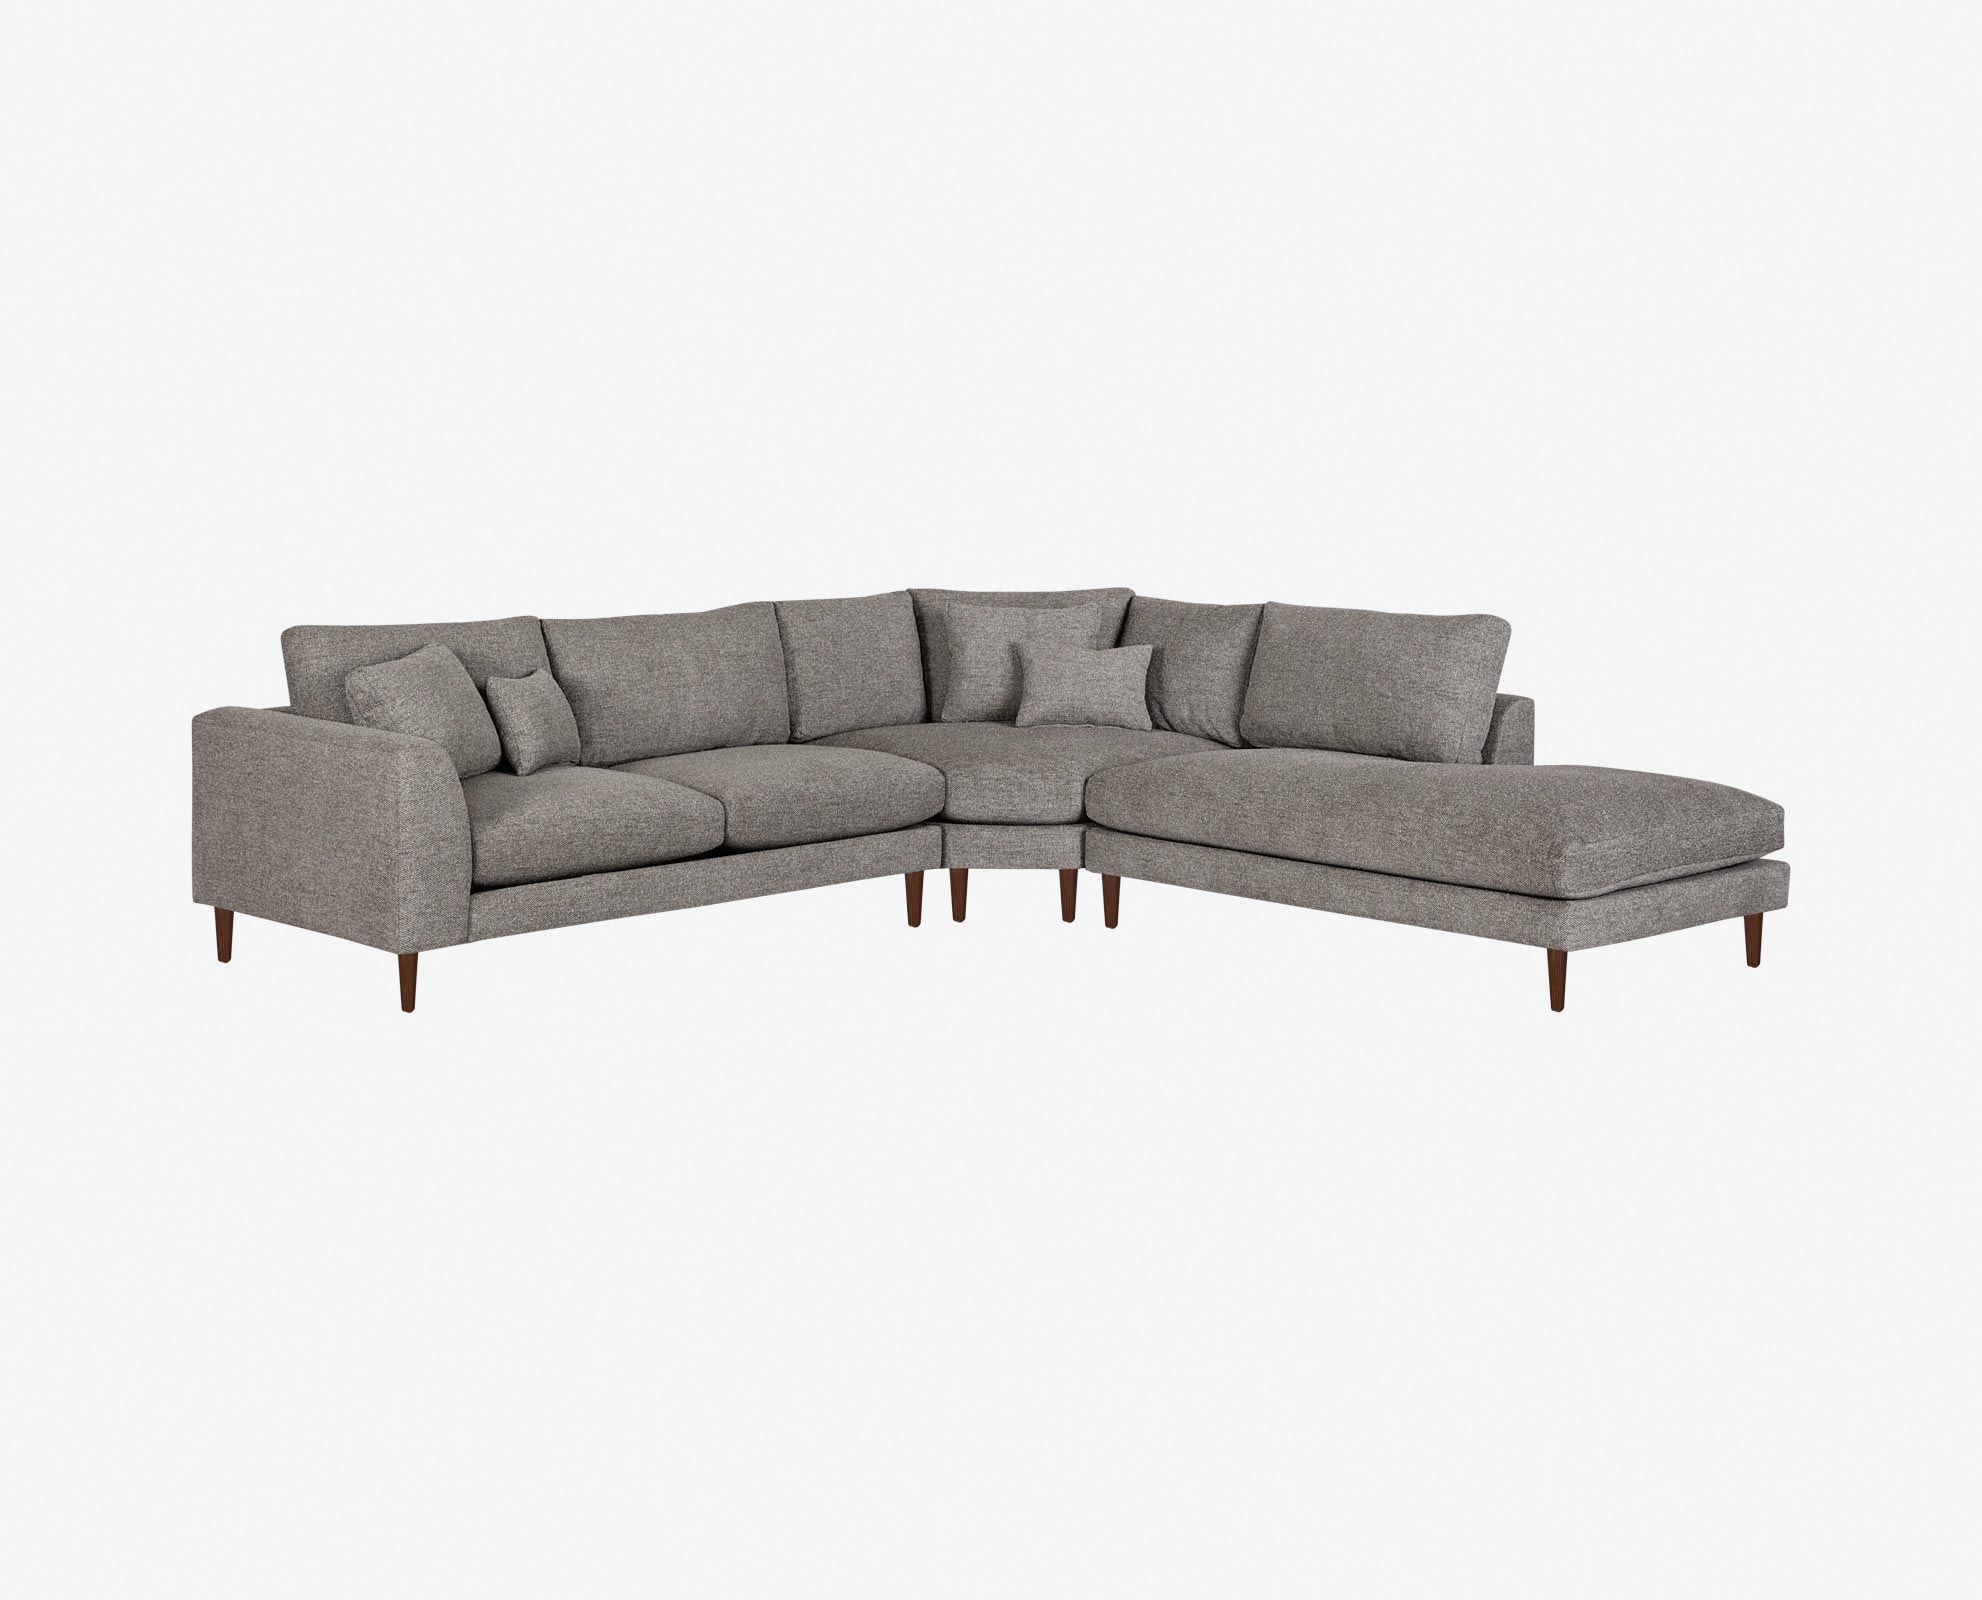 Dania The grand Hugo sectional is a great value and a perfect